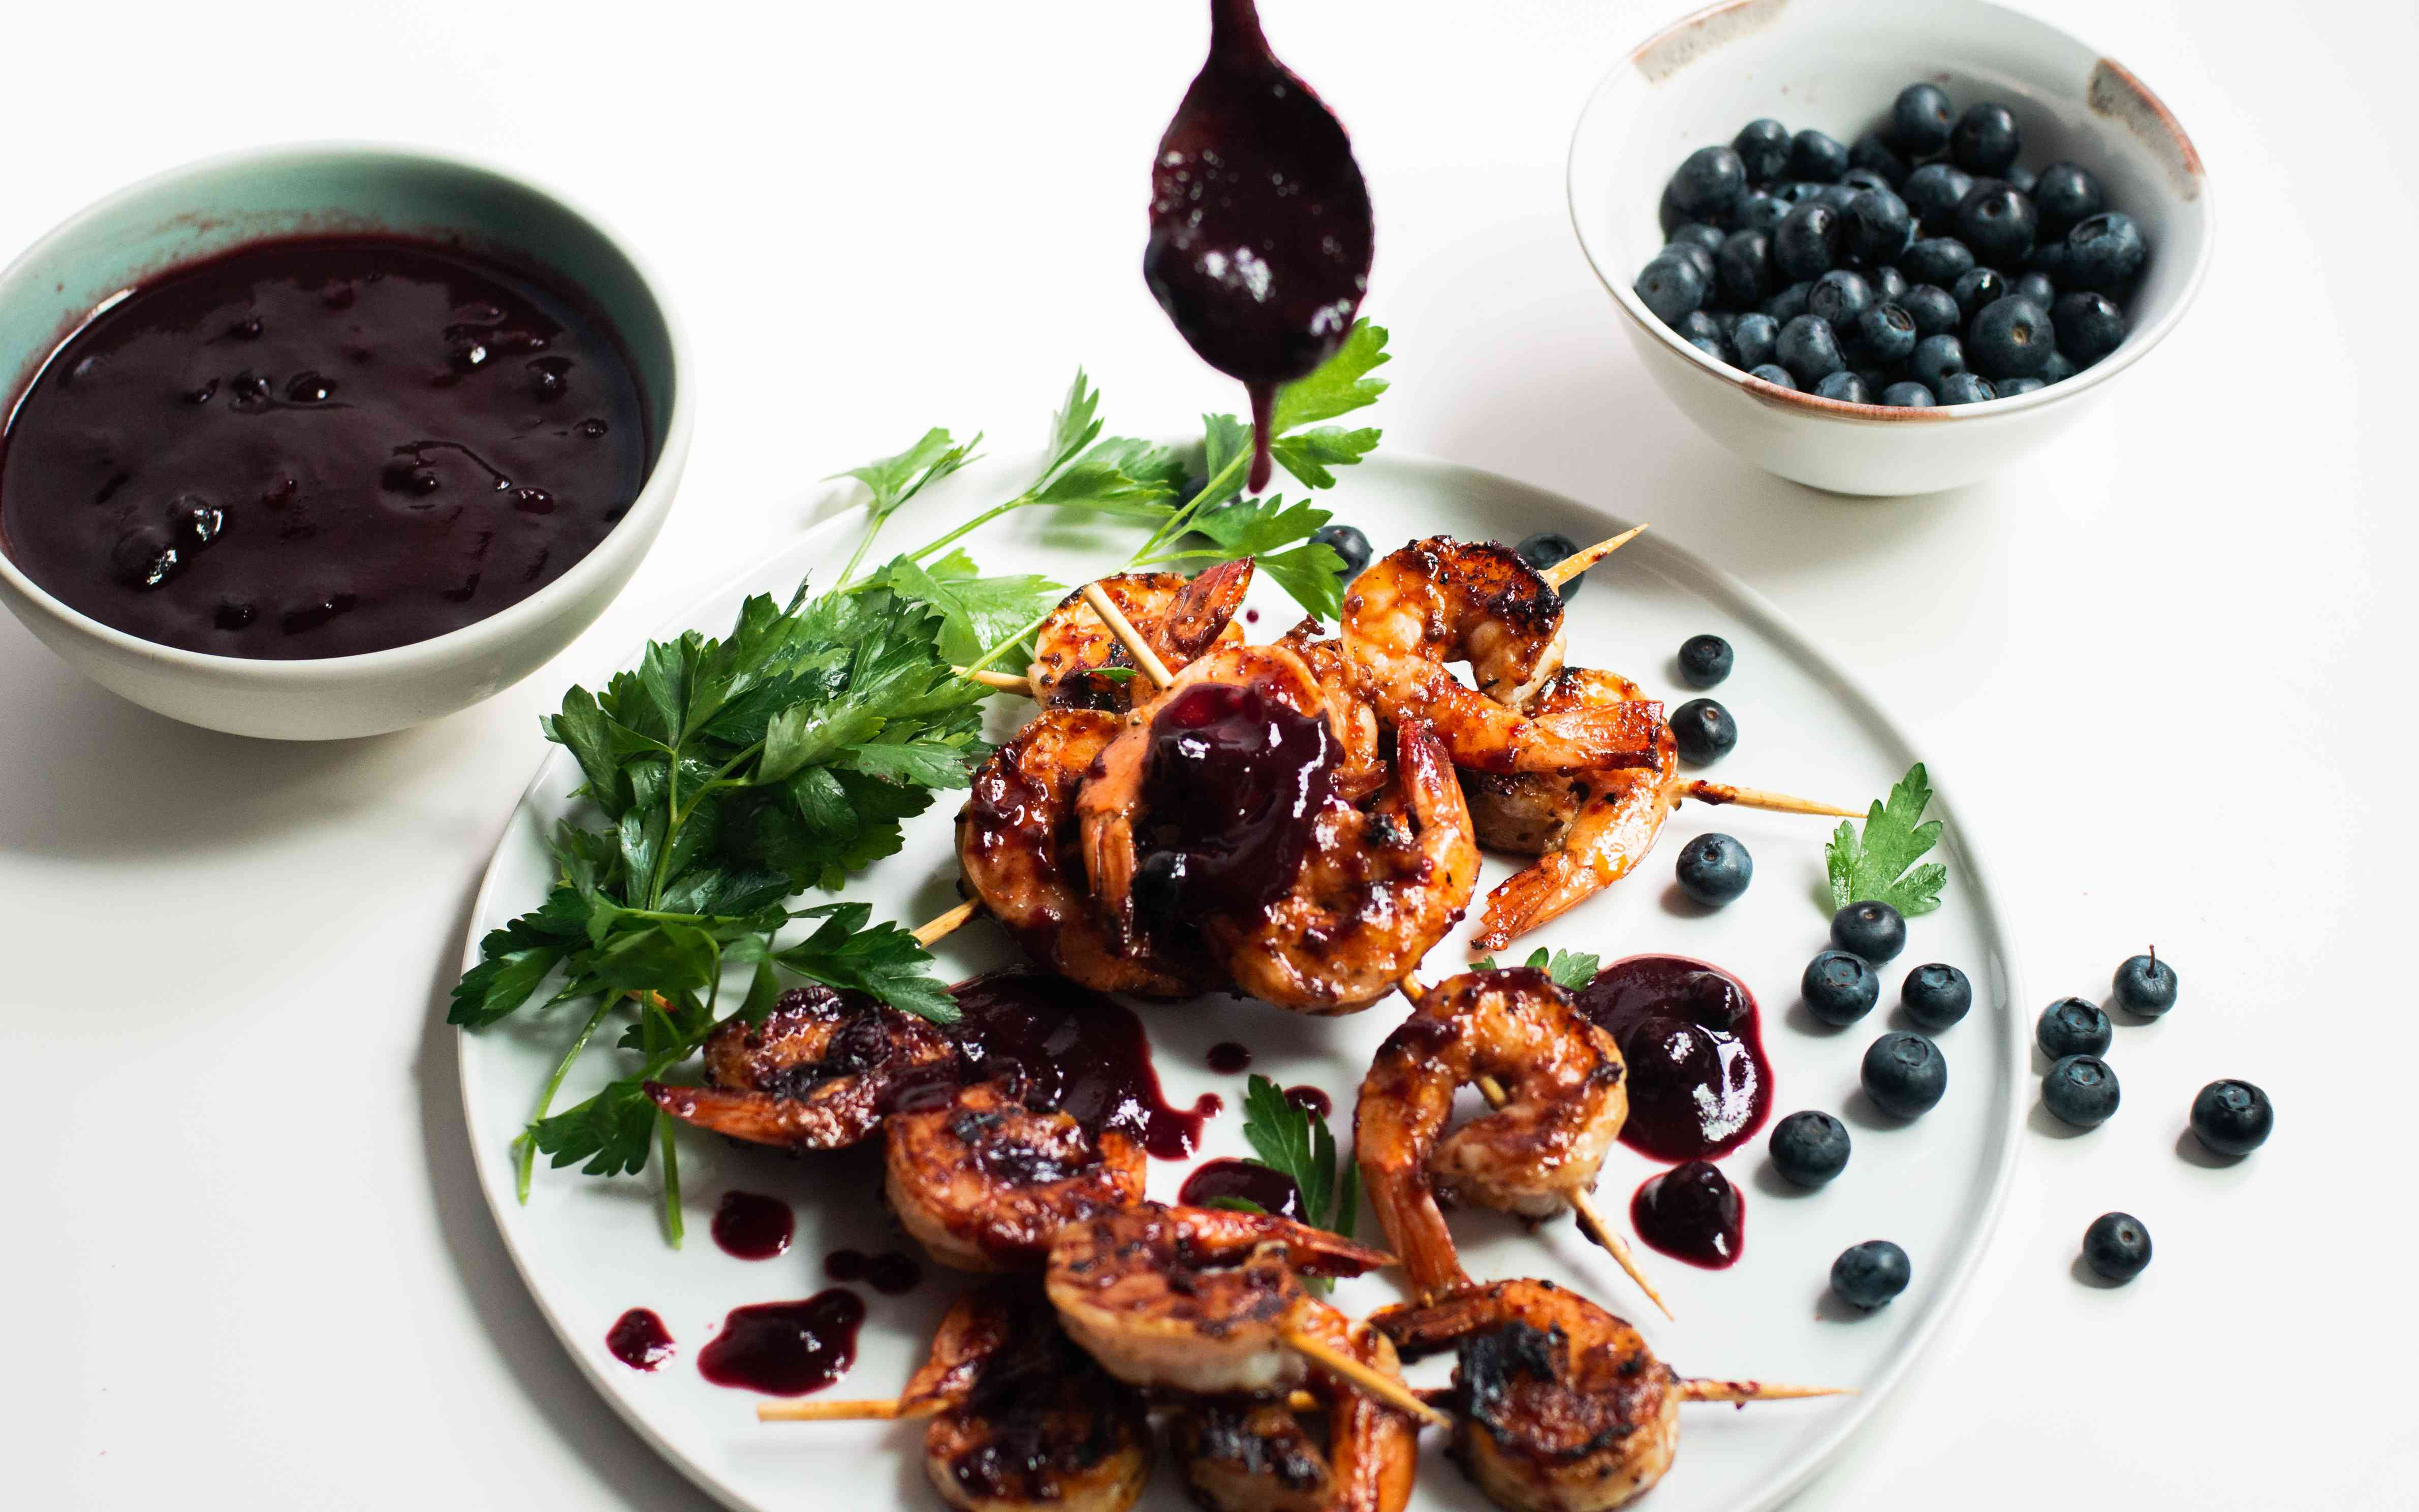 Add blueberry sauce and enjoy